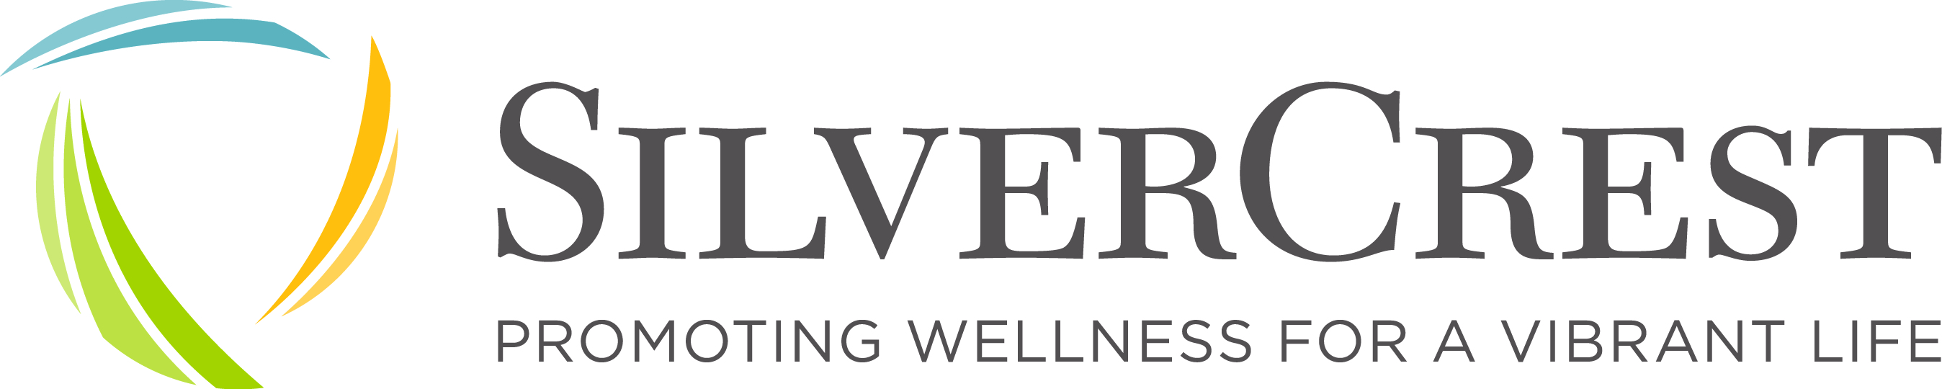 SilverCrest Properties Logo Promoting Wellness for a Vibrant Life